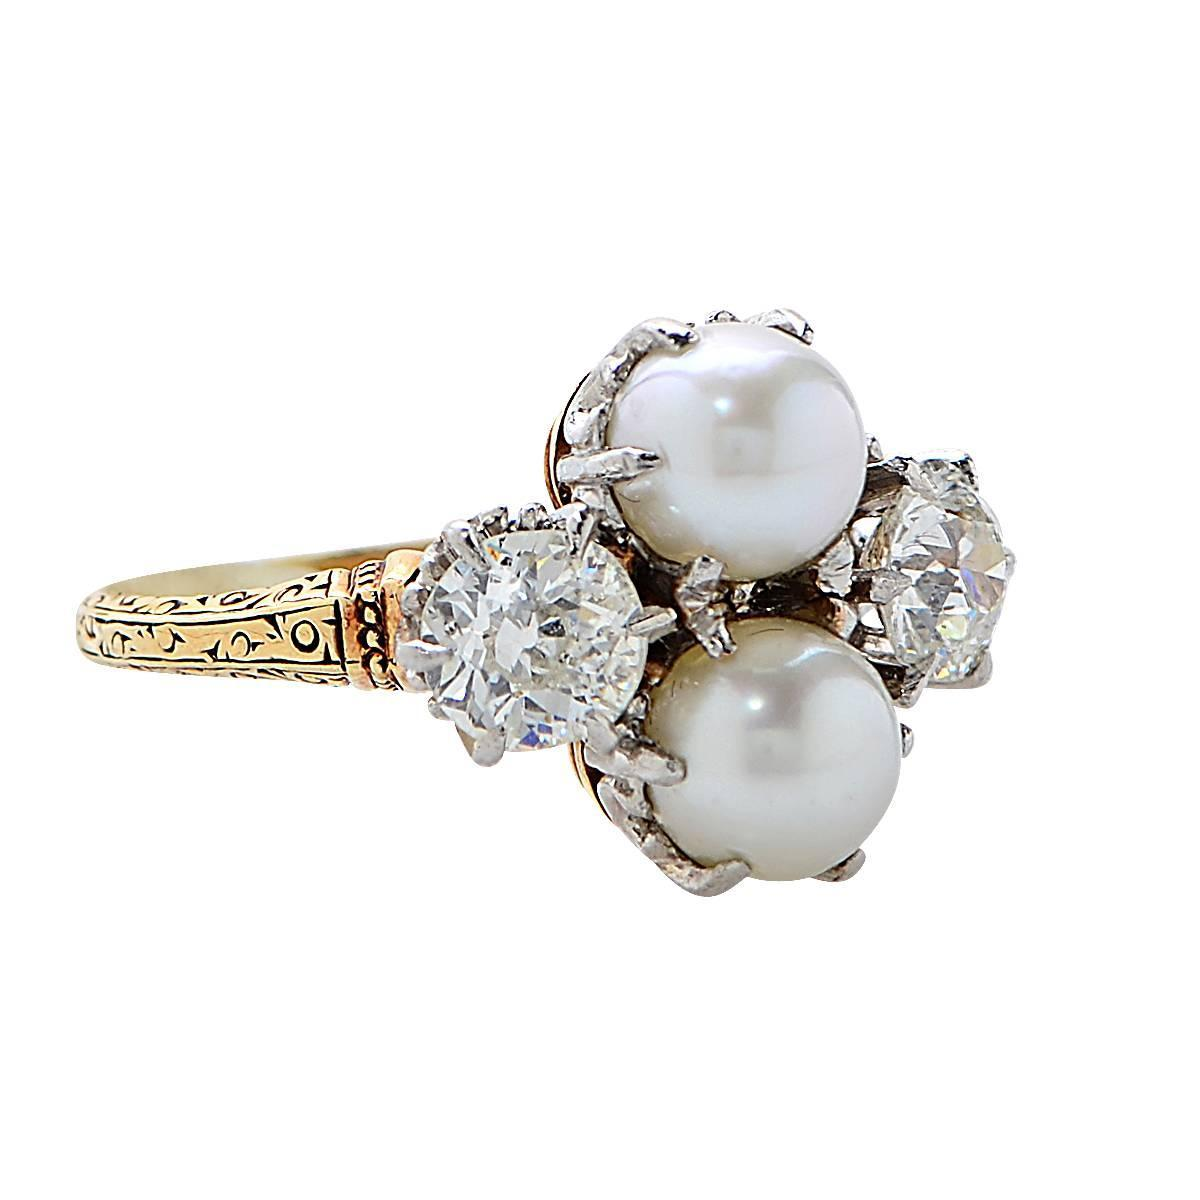 1 25 Carat Diamond and Pearl Ring at 1stdibs